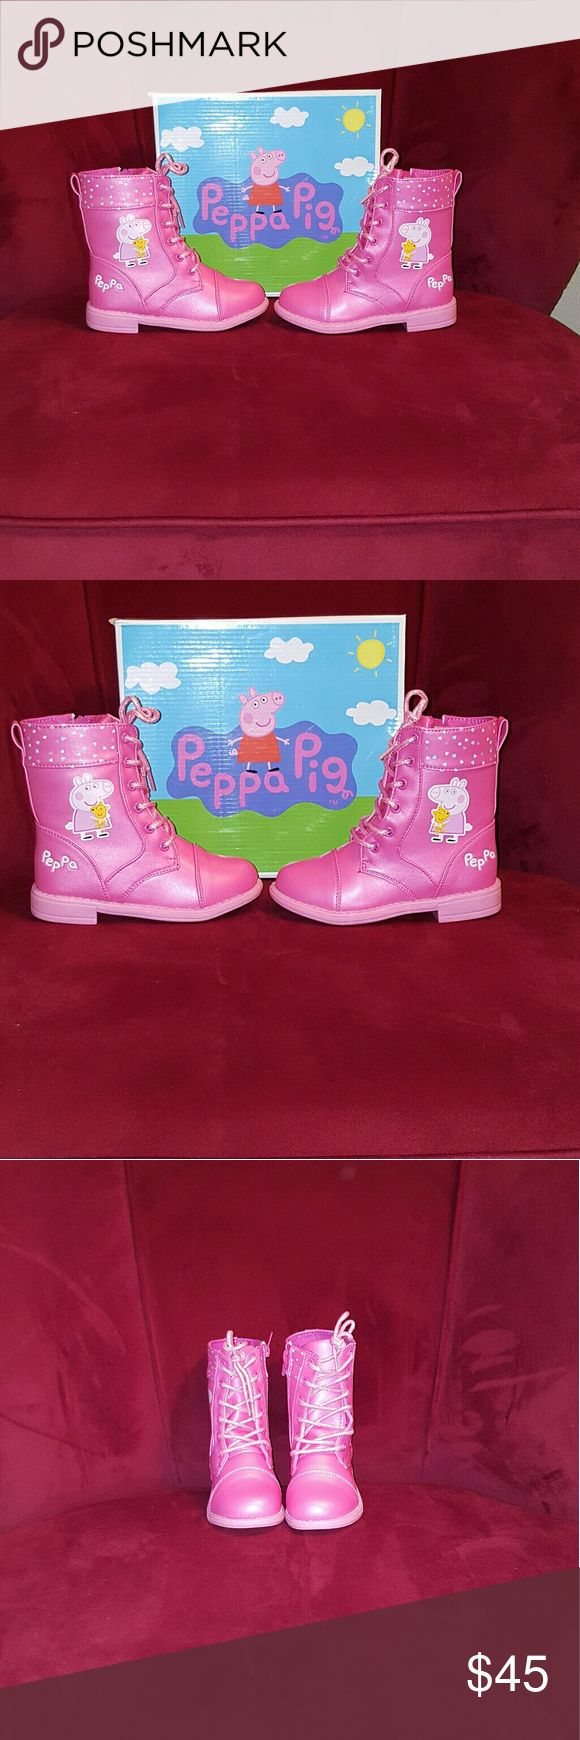 Peppa Pig boots for girl size 10 Peppa Pig boots for girl size 10, new with a tag. Peppa Pig Shoes Boots